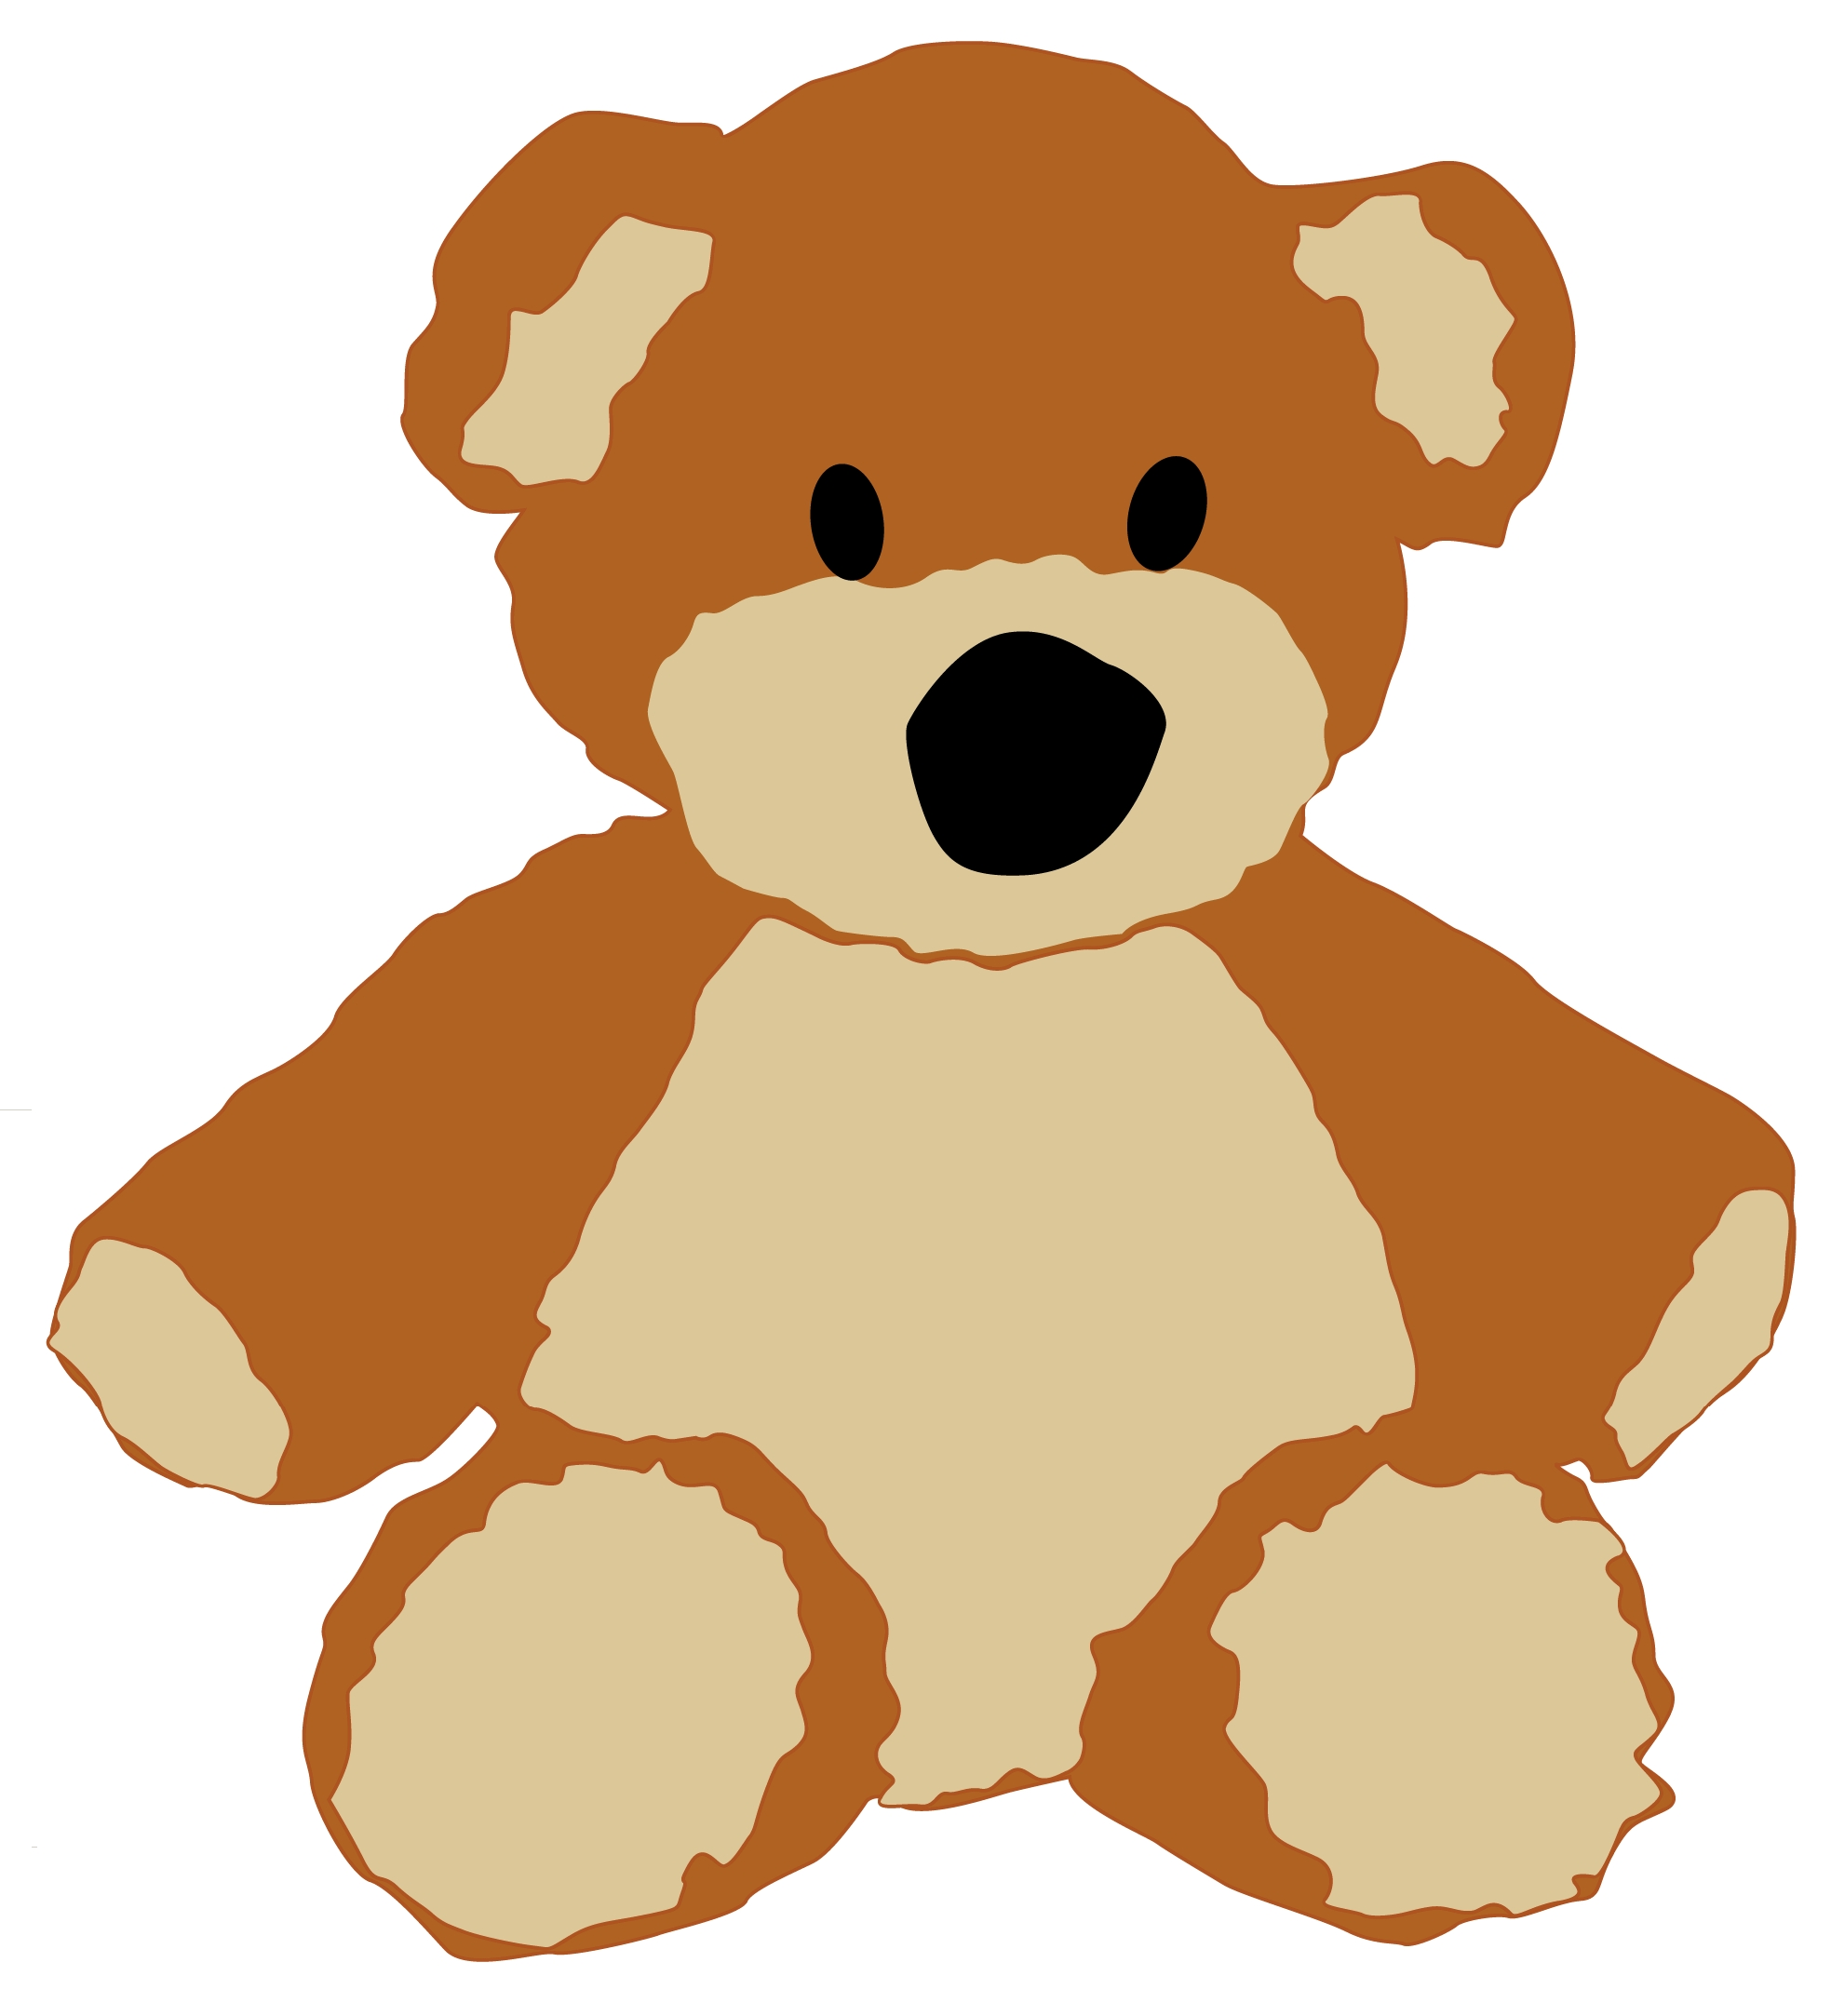 Cute bear clipart jpeg graphic cute bear clipart – Clipart Free Download graphic